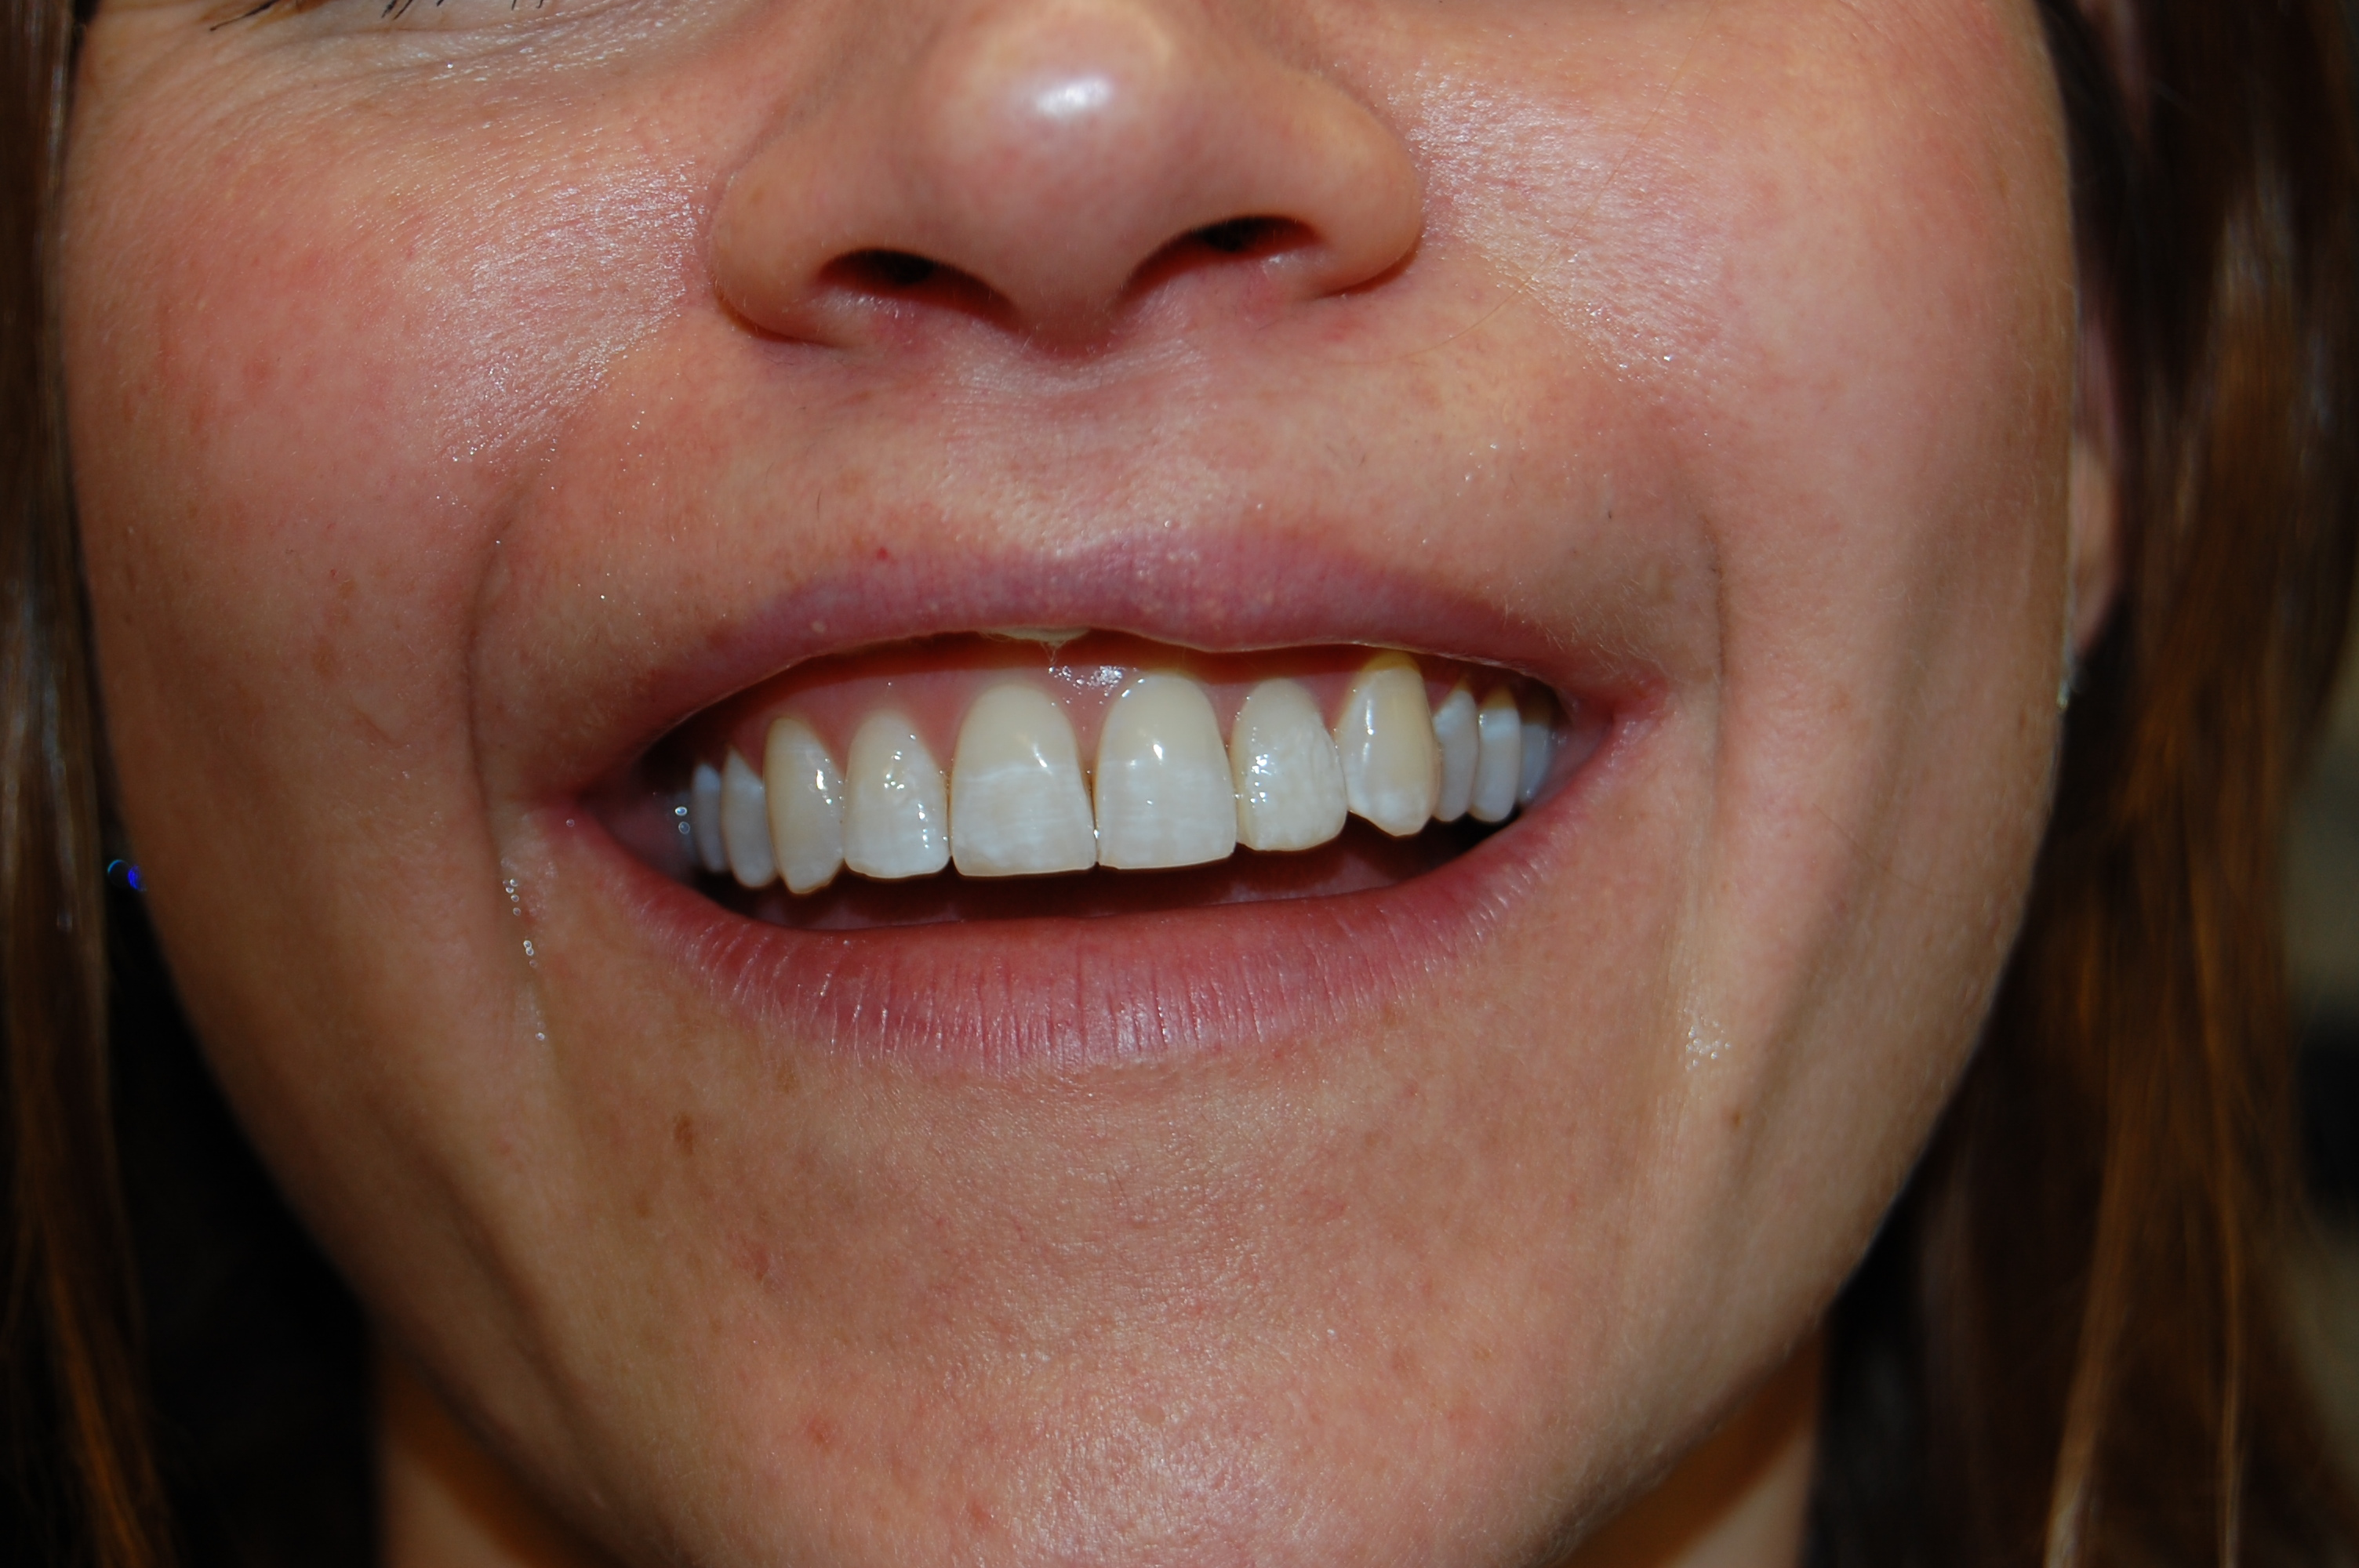 dental filling front teeth-#8